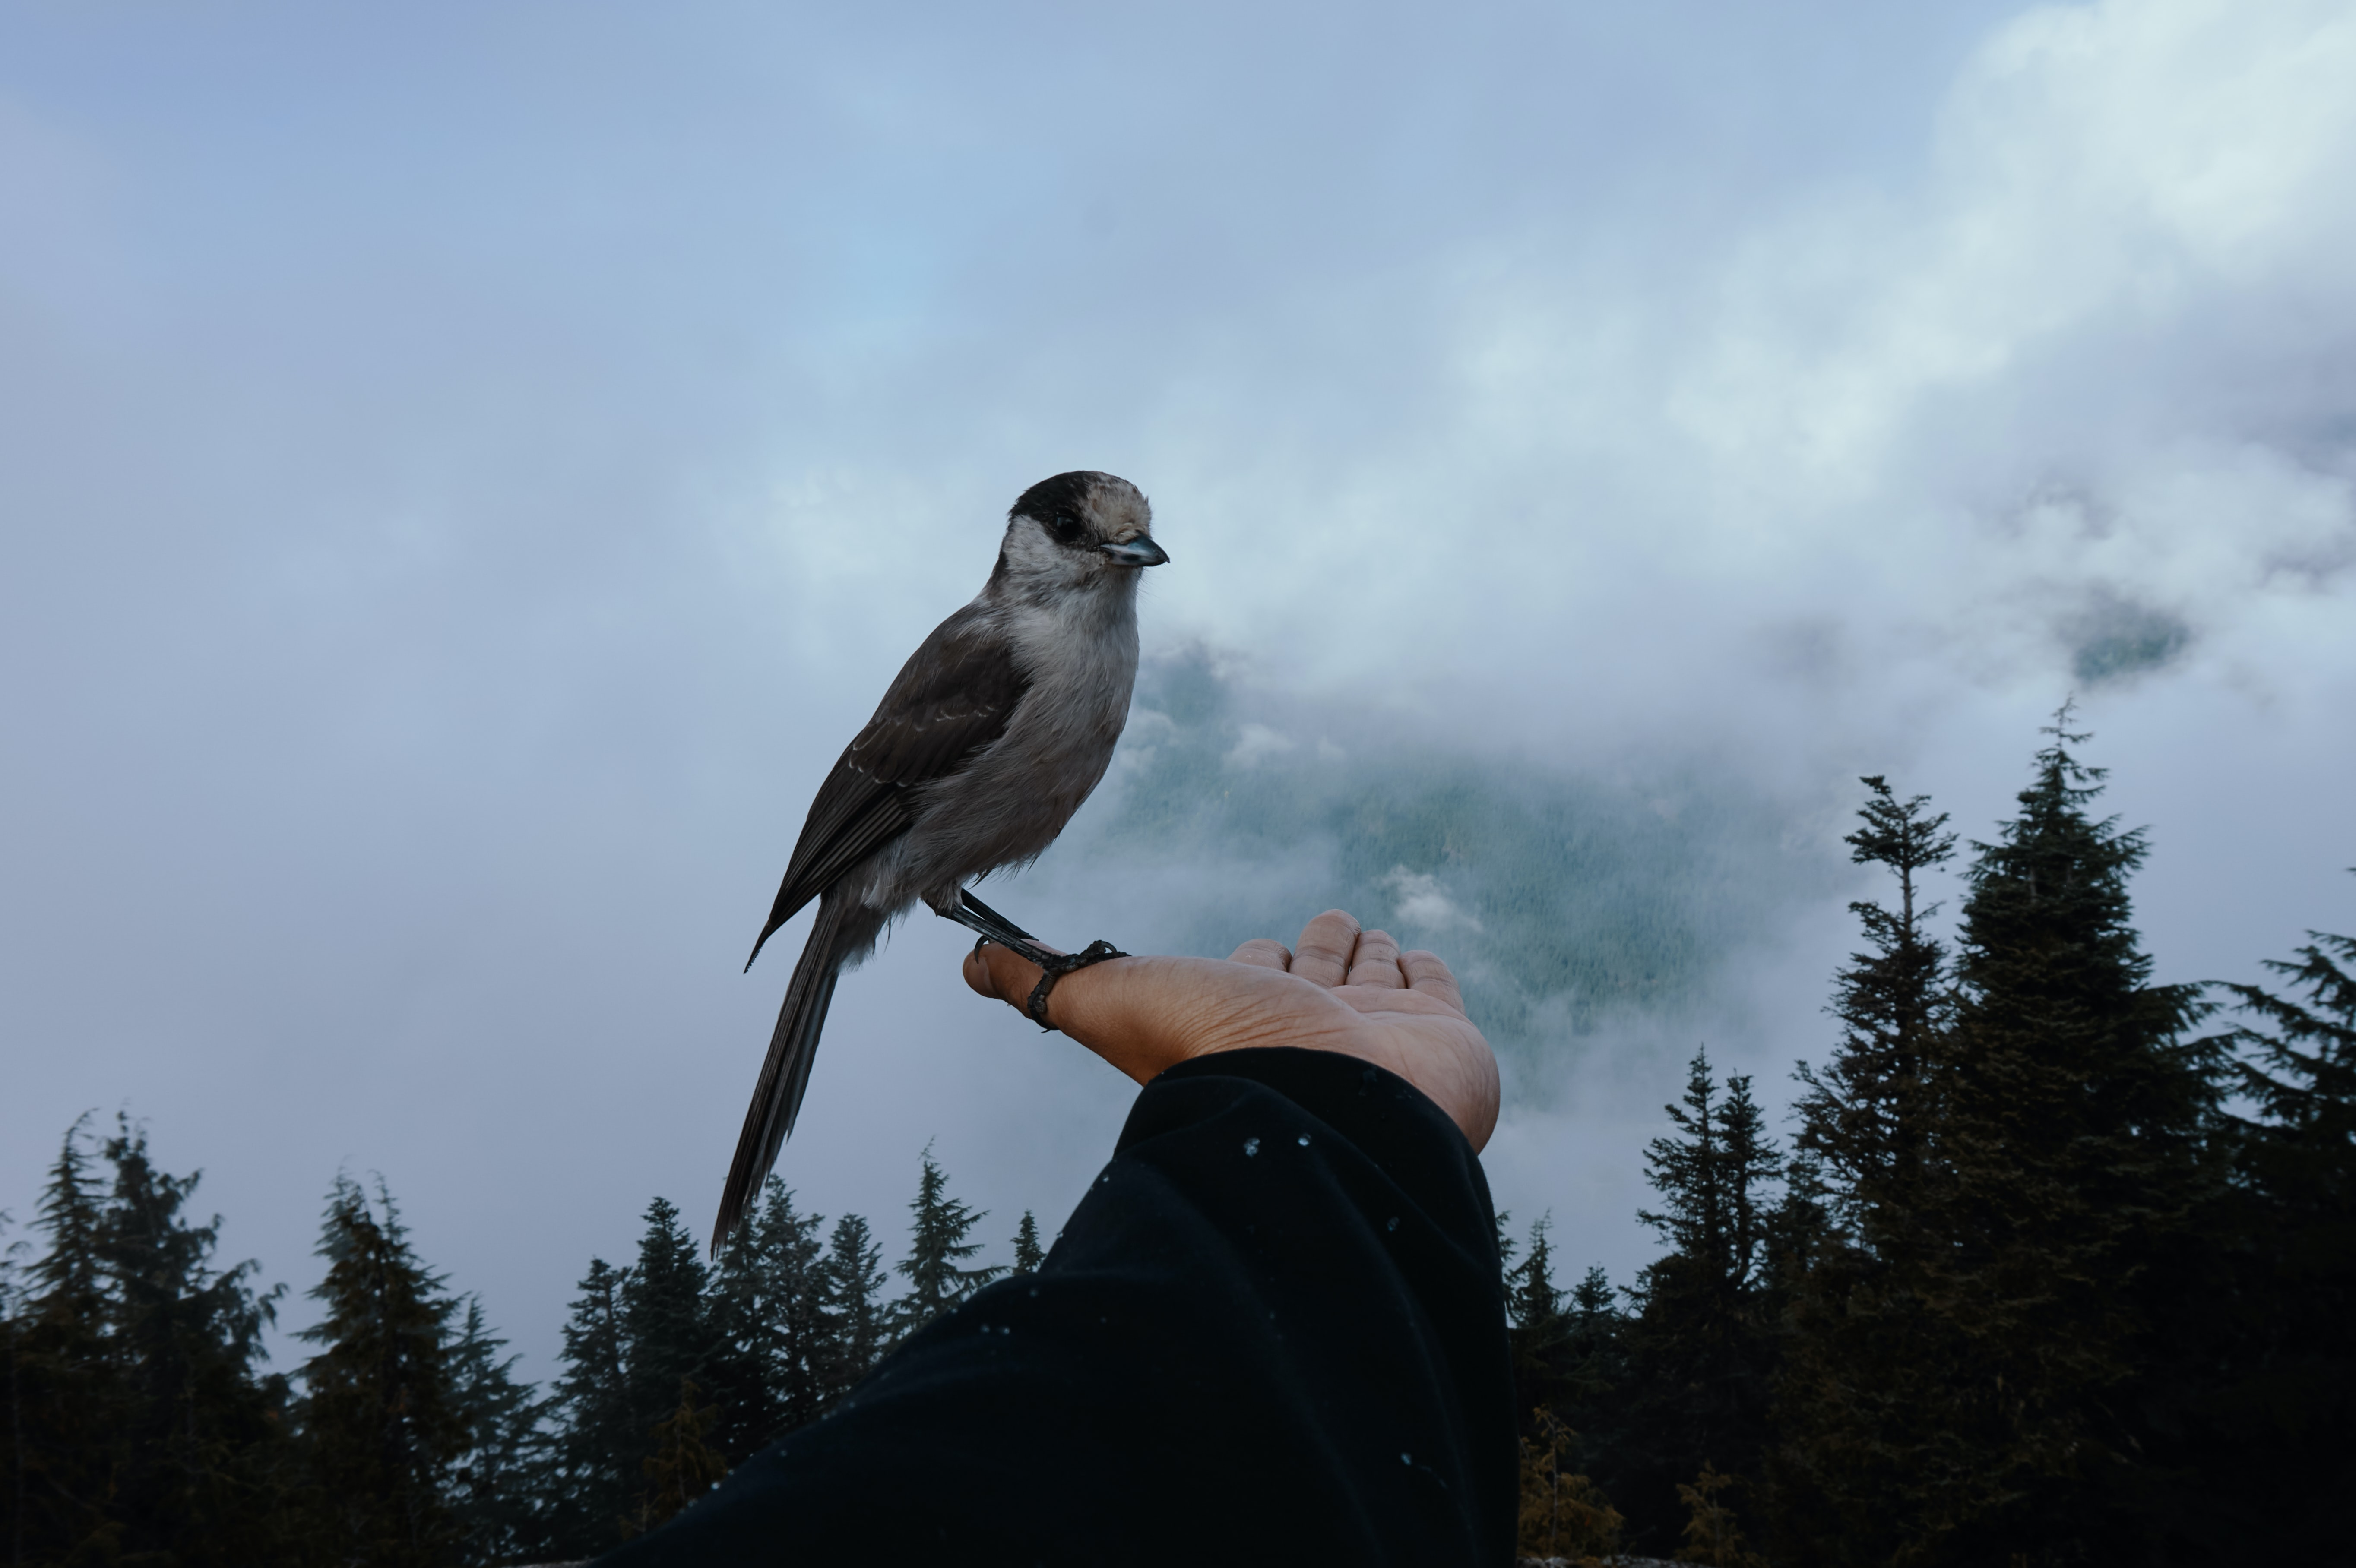 bird on person's thumb during daytime